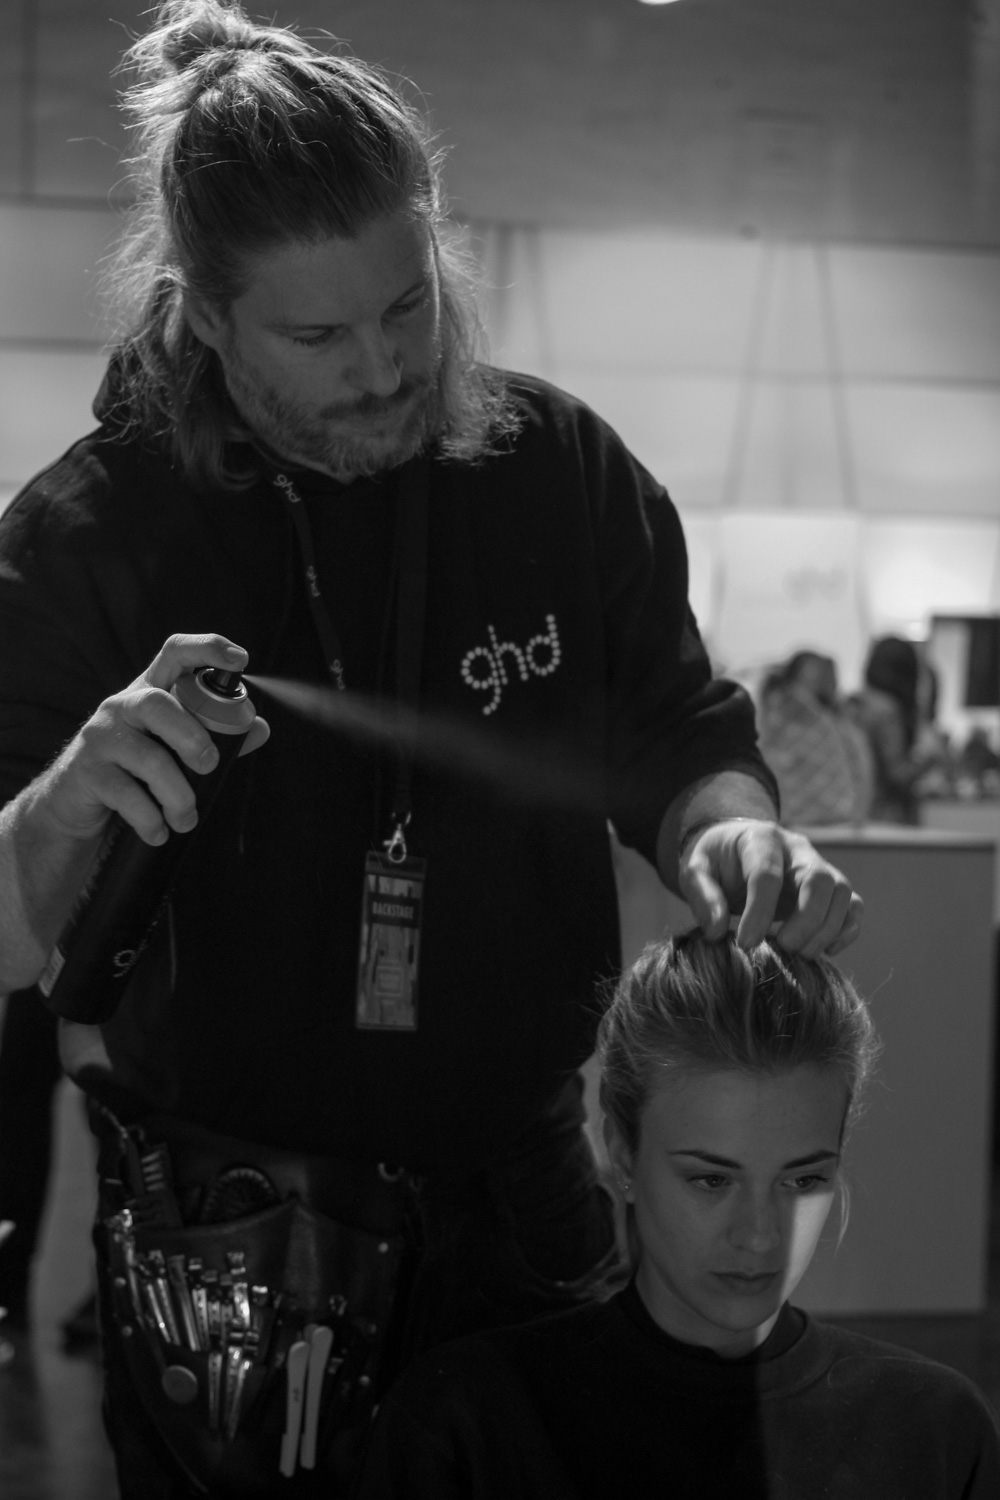 ghd, hair, trends, haar, trend, platform fashion, winter 2016, düsseldorf, runway, fashion week, hair styles, fashionblog, düsseldorf, essen, modeblog, fashion, mode, beauty, good hair day, locken, wellen, glamour waves